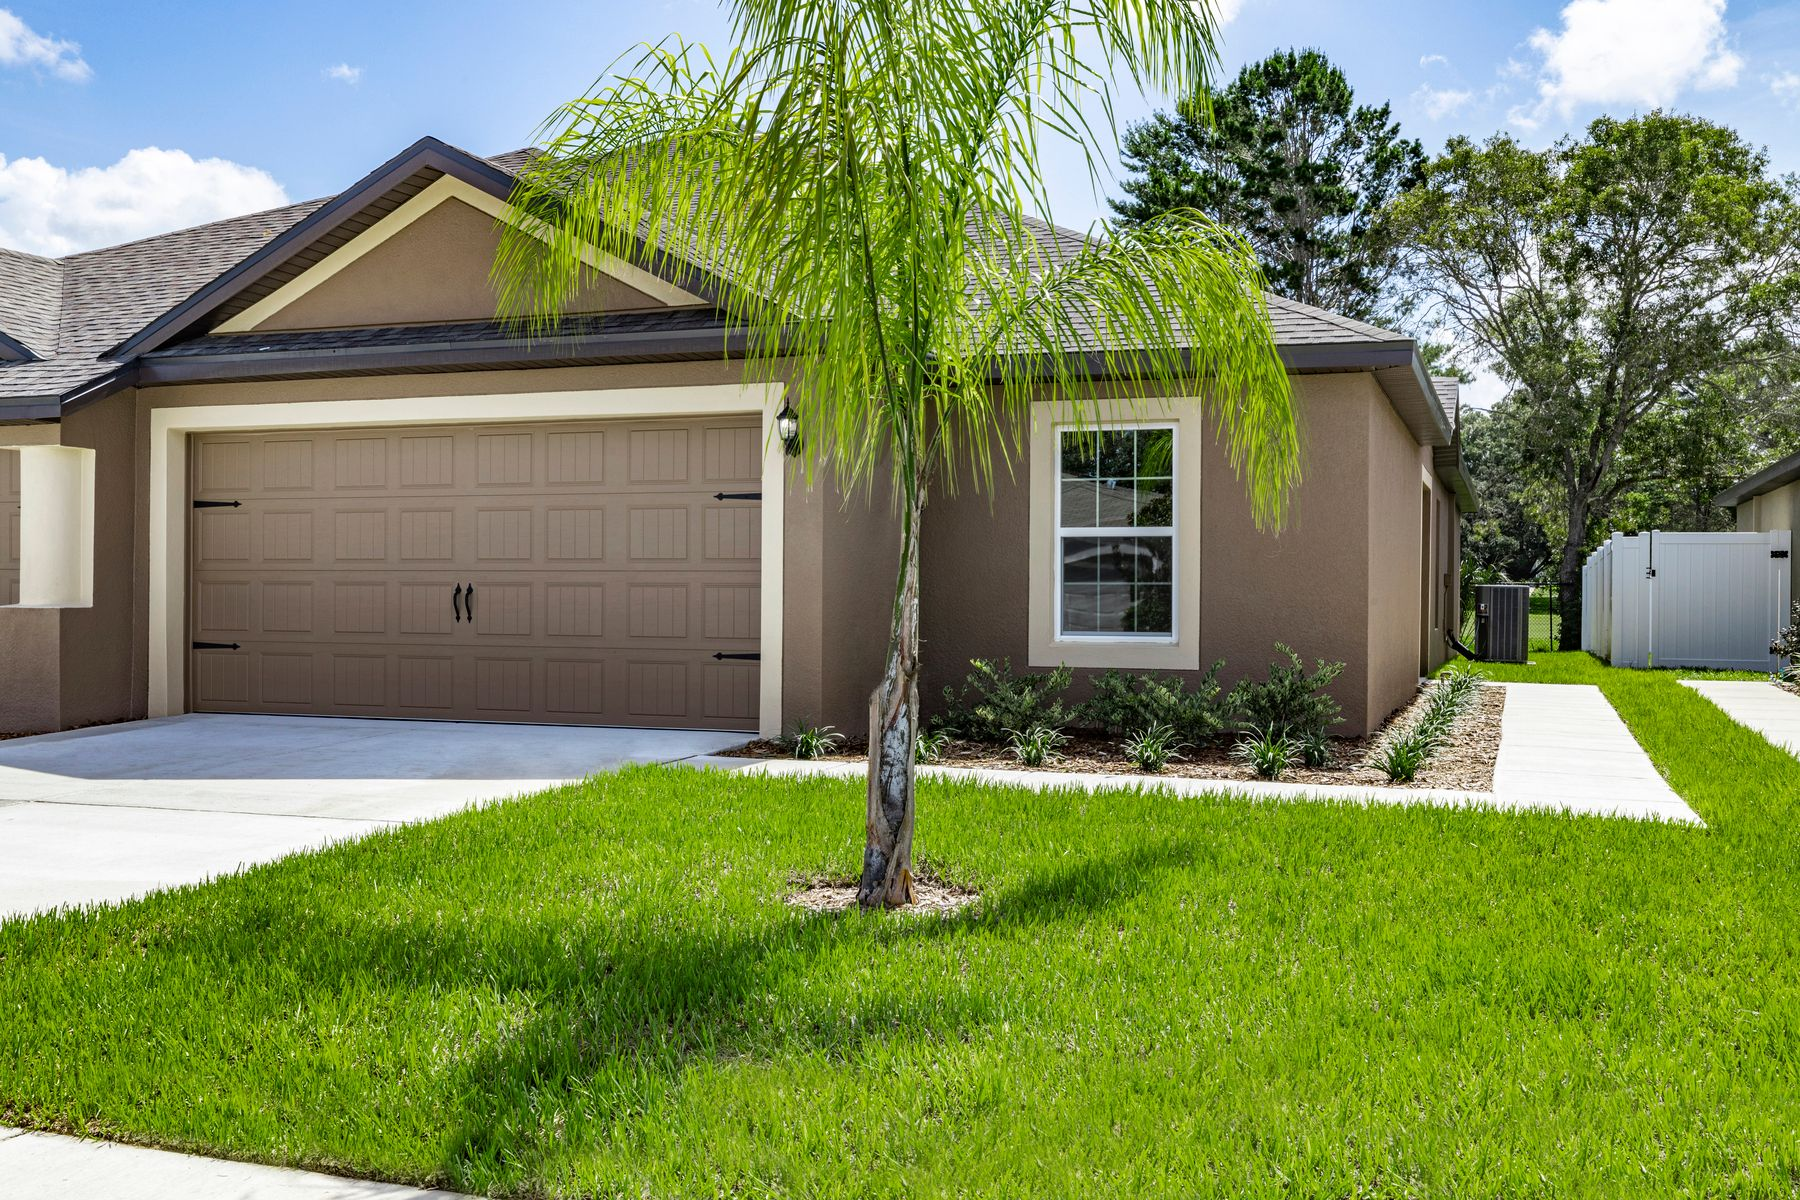 The Lido Key by LGI Homes:Brand-new home with incredible curb appeal